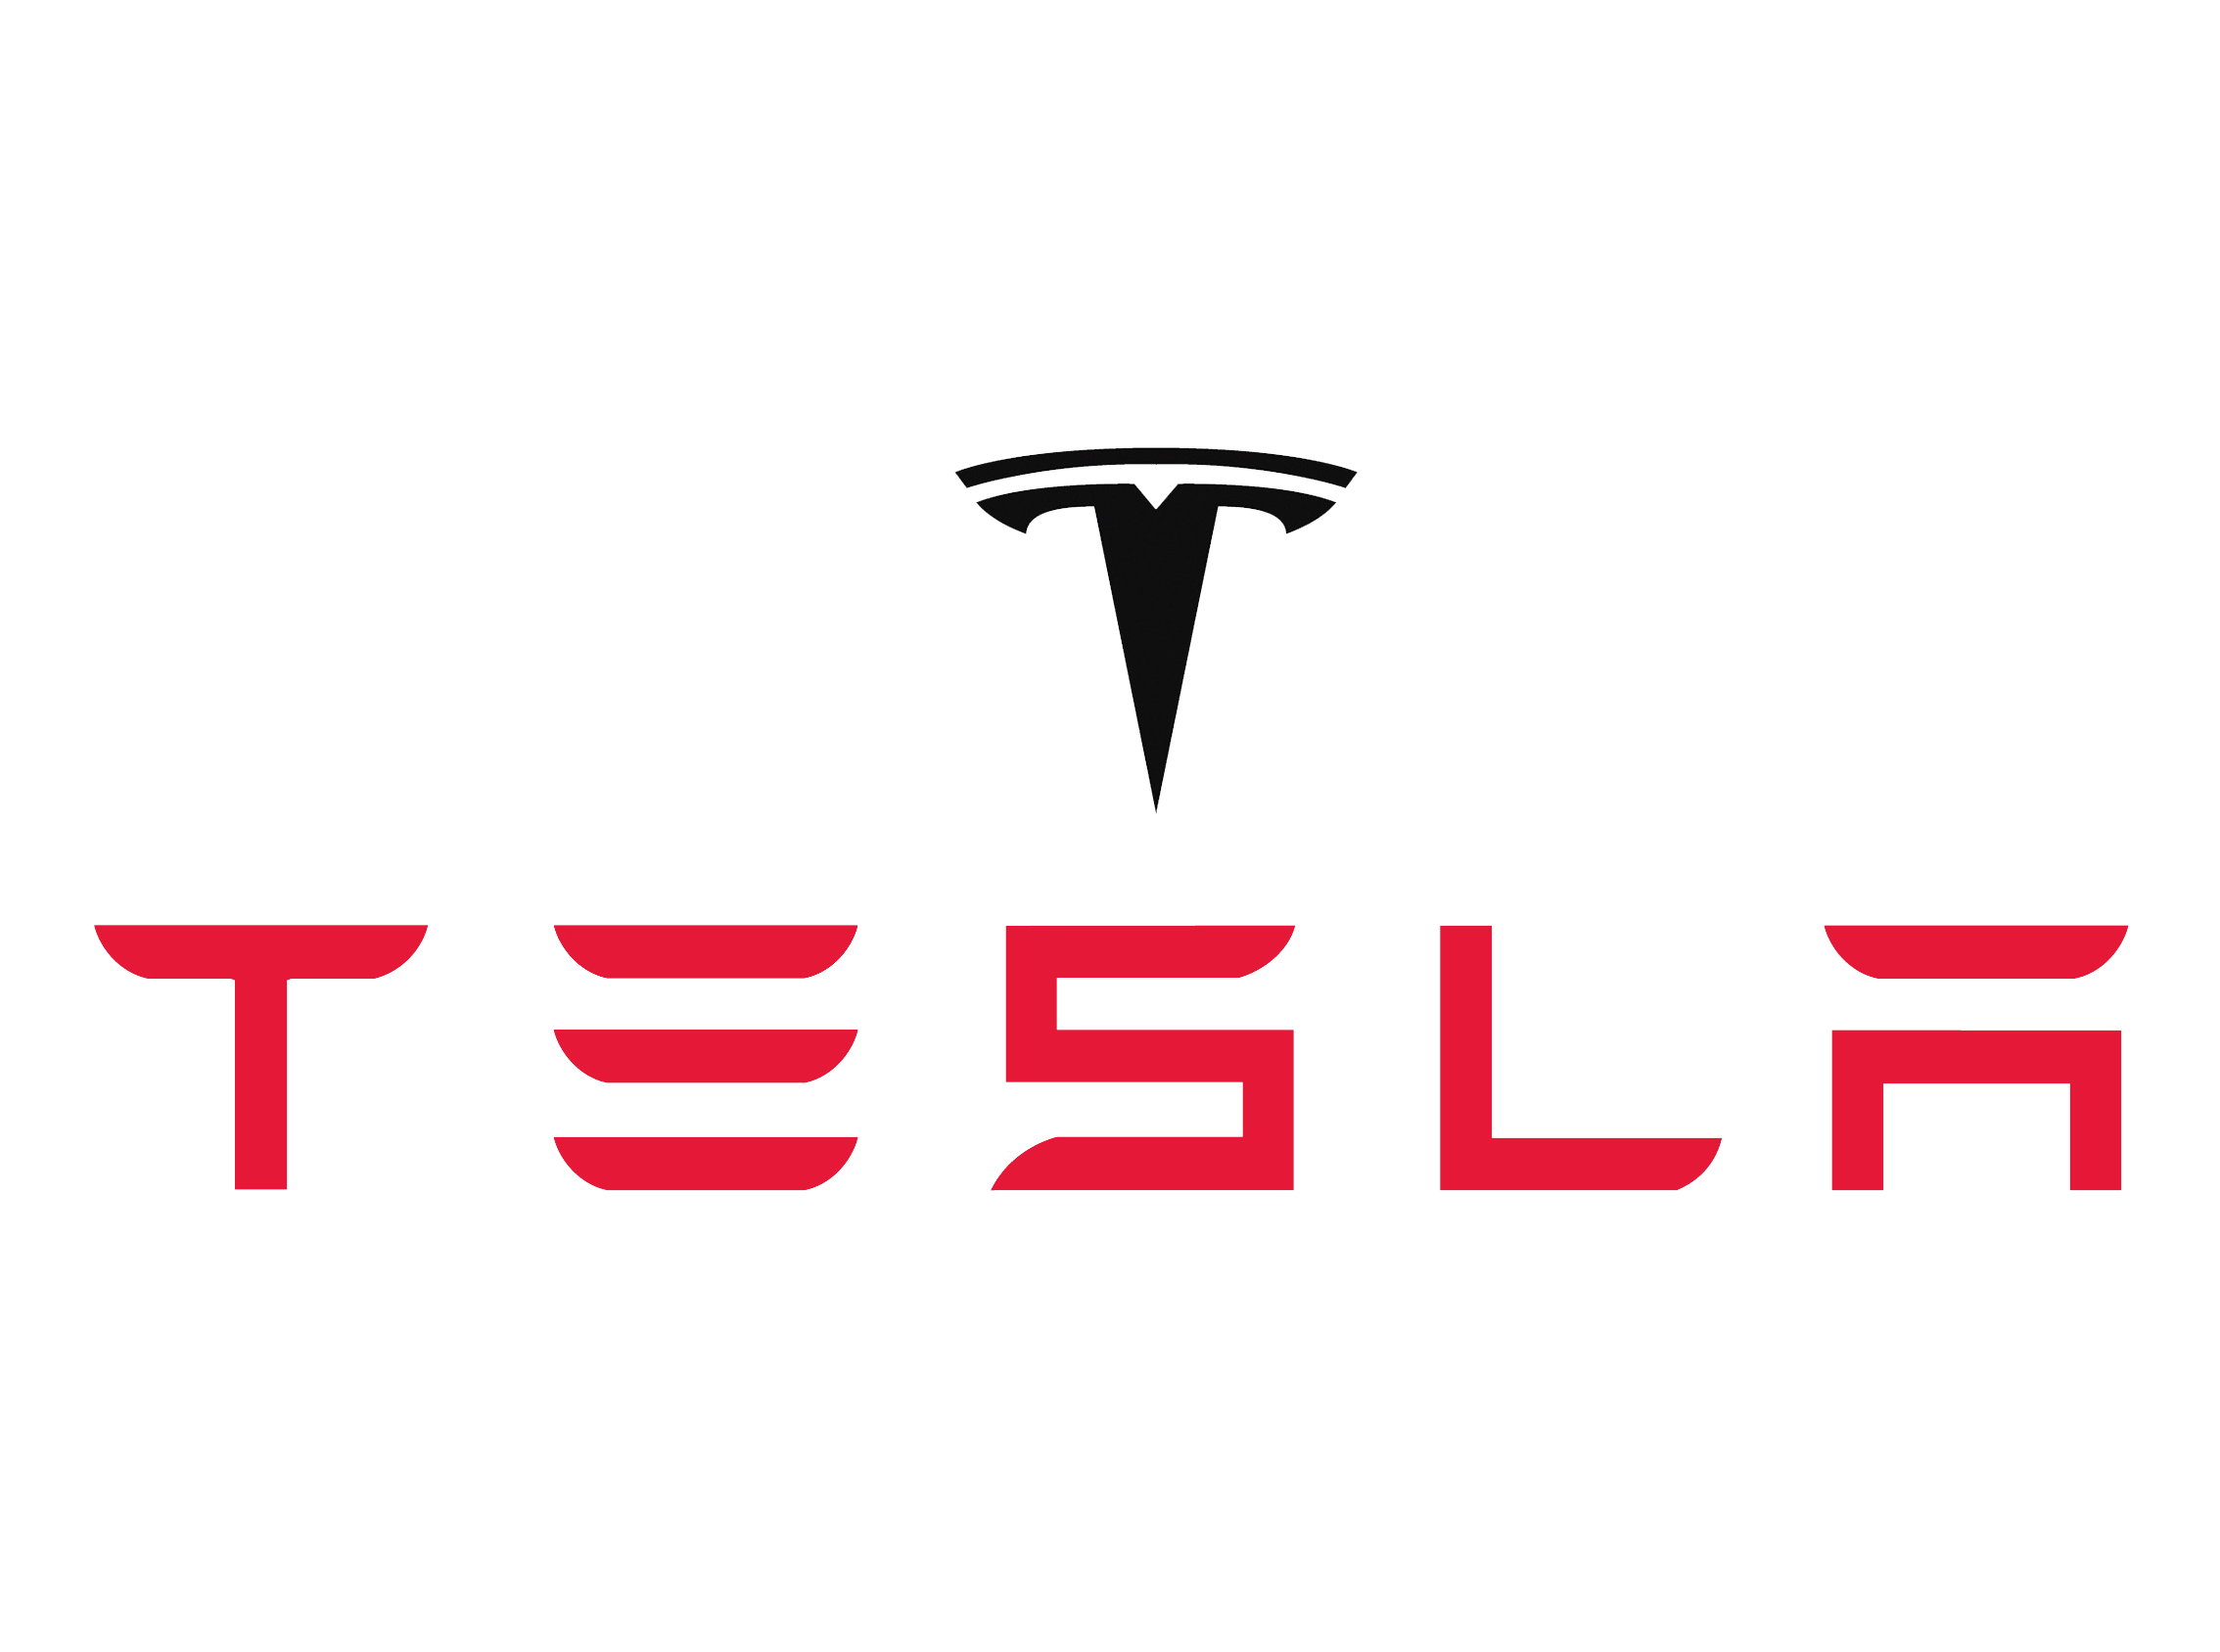 Tesla Announces $1.5 Million in Education Grants for STEM Students